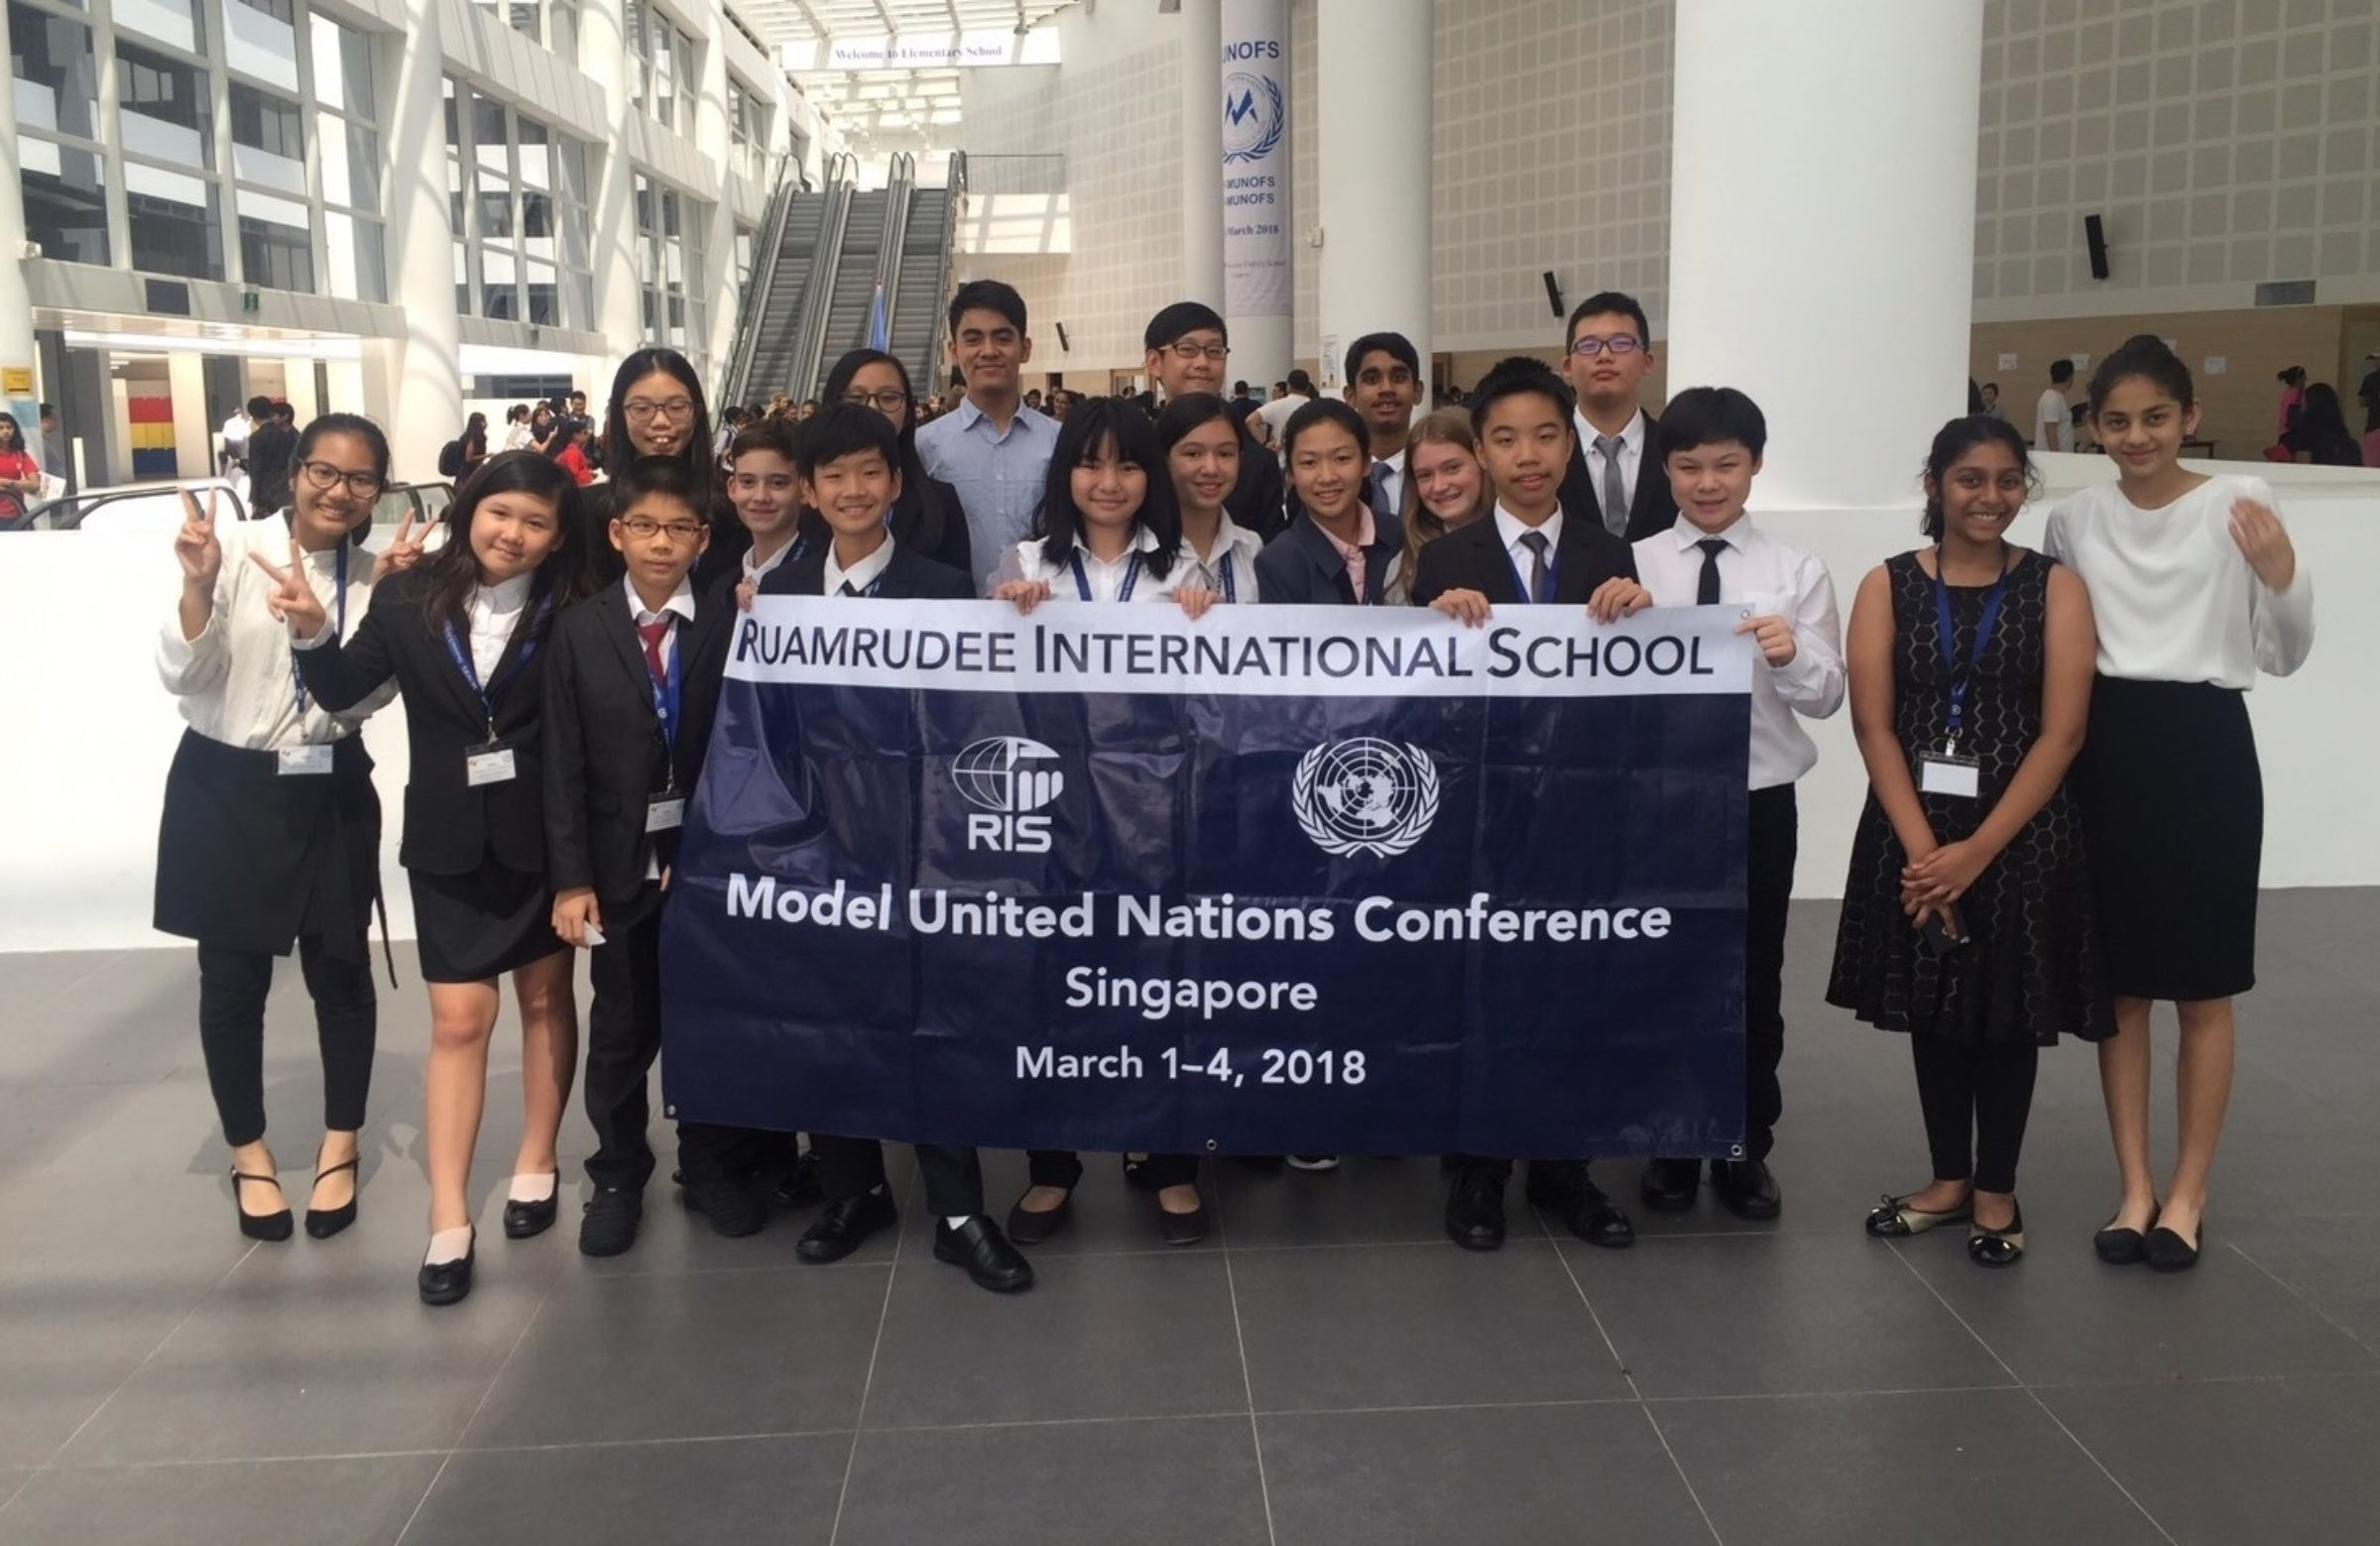 MS Students to Model United Nations Conference in Singapore (MUNOFS)